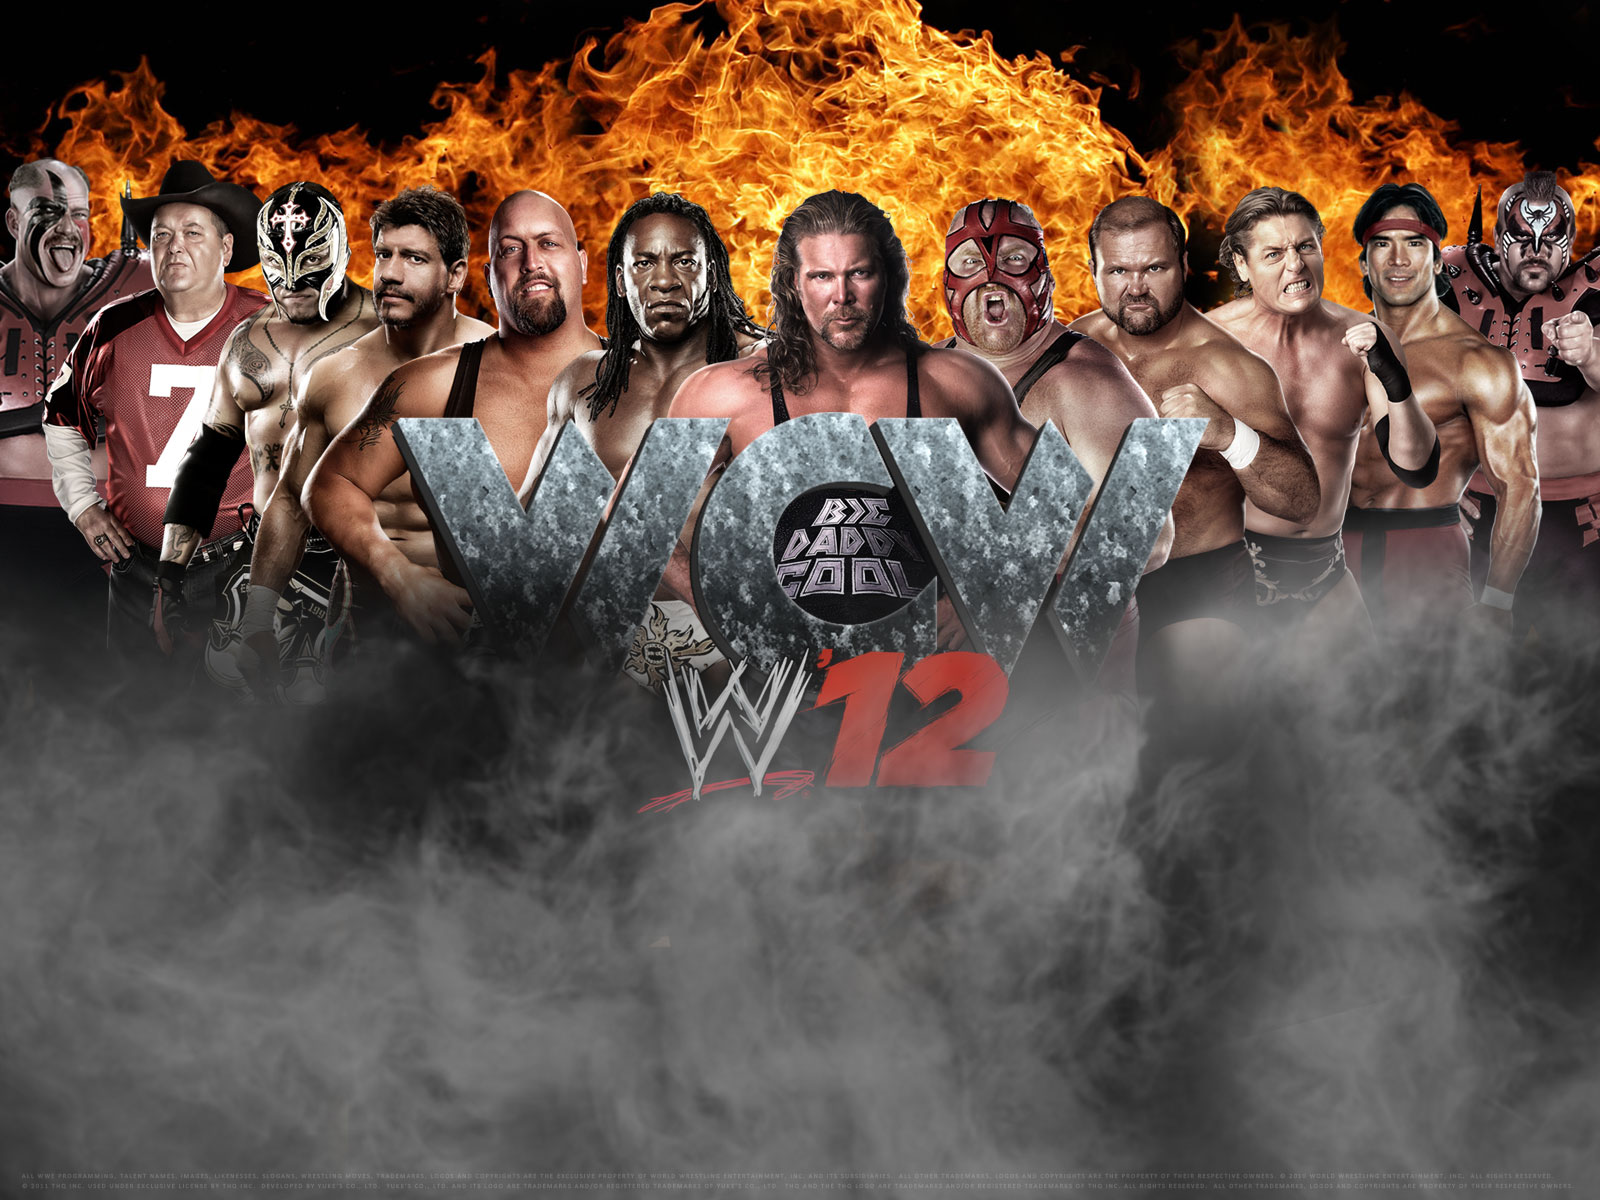 1999 wwe wolfpack sting wallpaper - photo #12